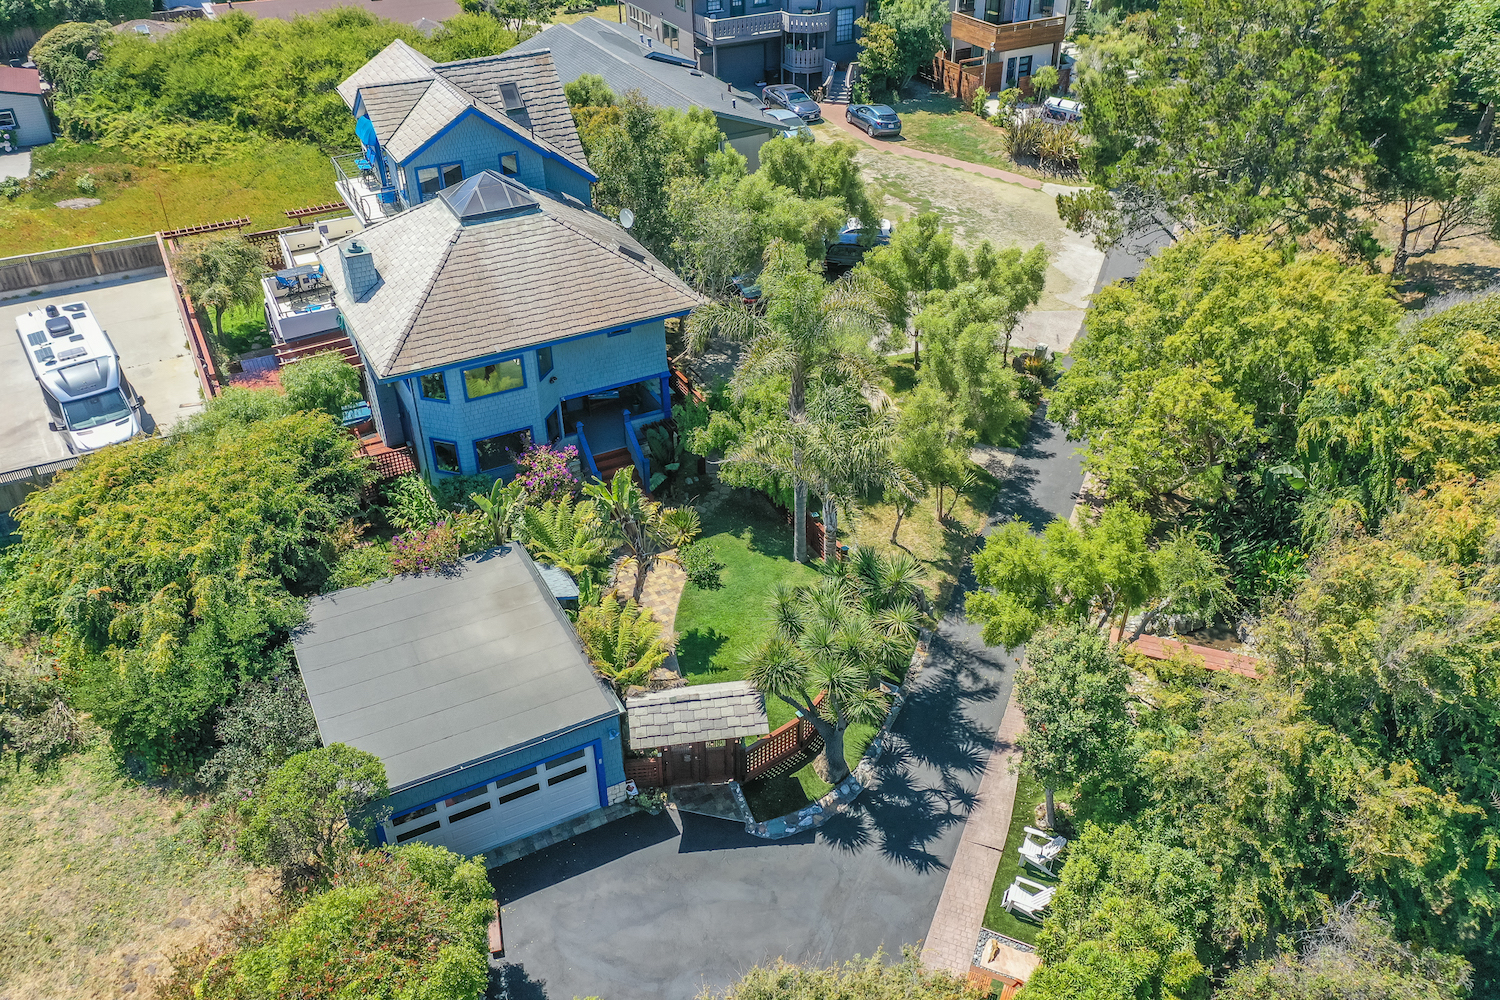 127 bethany curve - aerial view of house